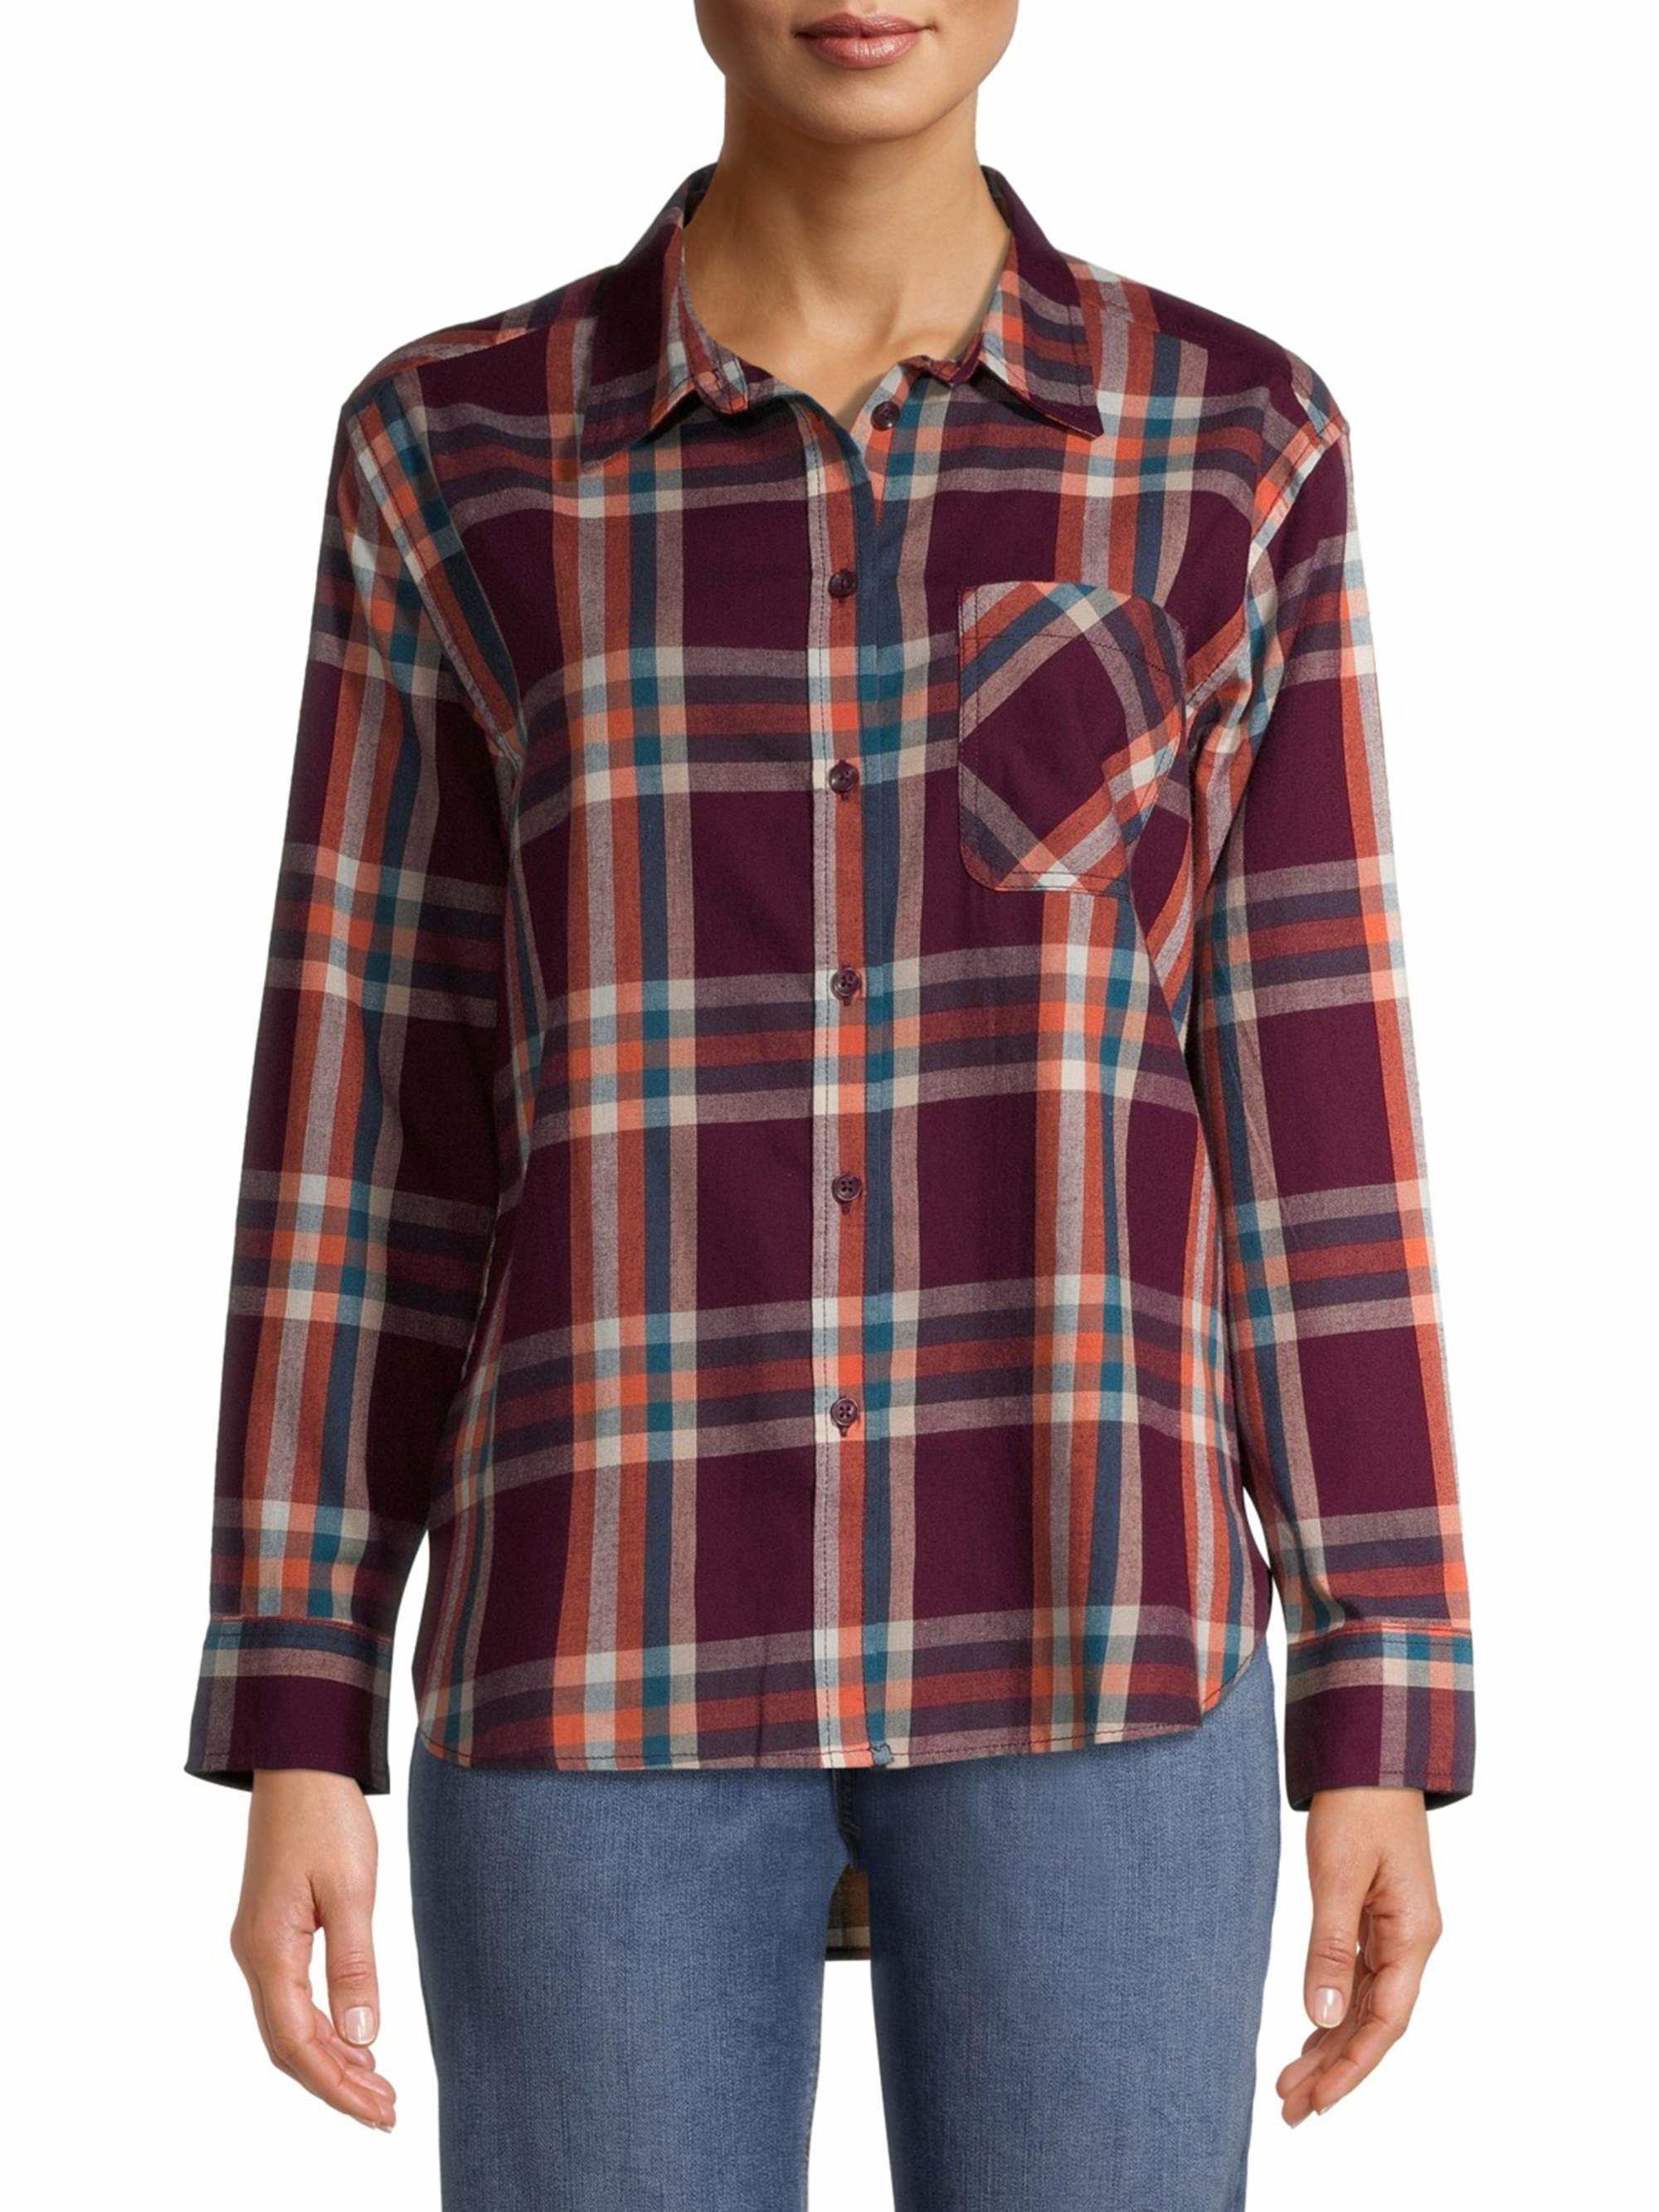 a model in a flannel shirt